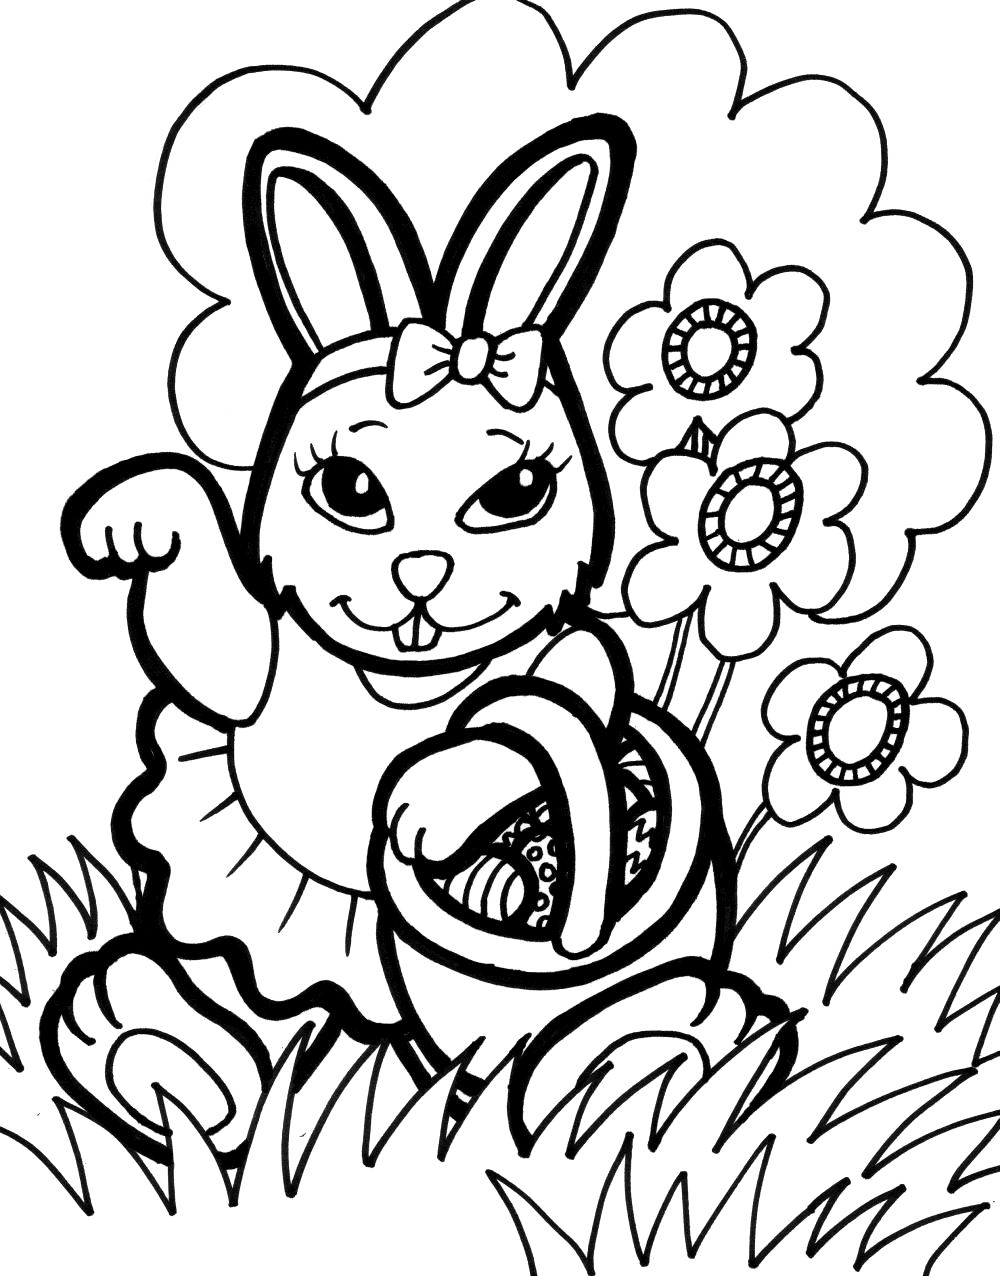 coloring images to print cool printable coloring pages for adults coloring home to coloring print images